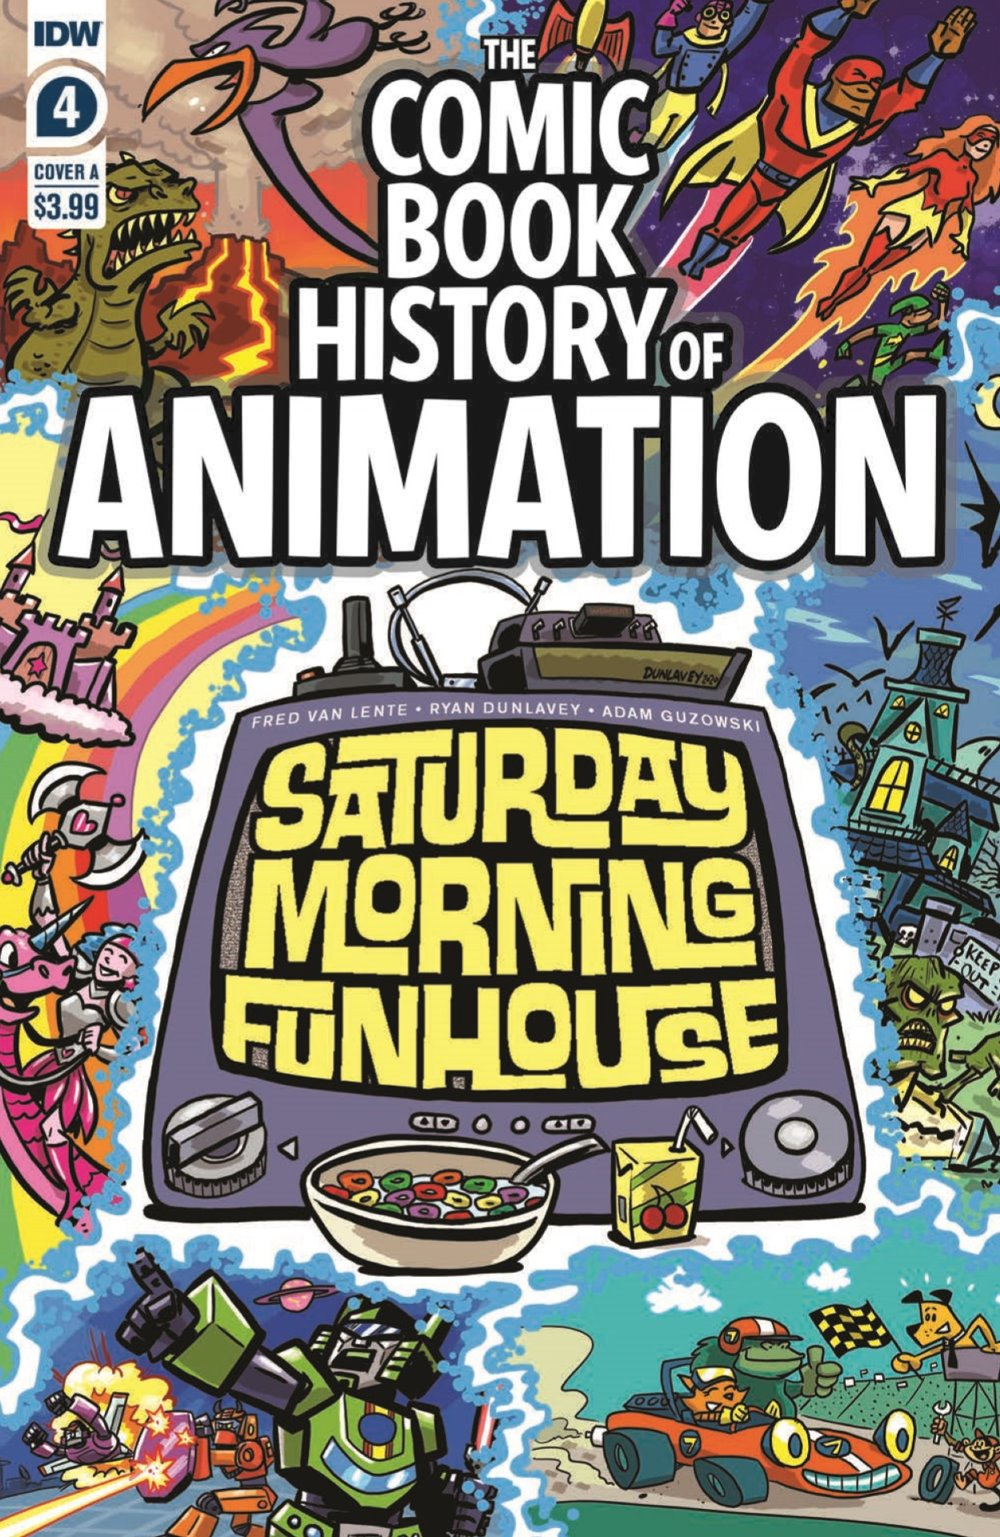 ComicBookHistory_04_pr-1 ComicList Previews: COMIC BOOK HISTORY OF ANIMATION #4 (OF 5)